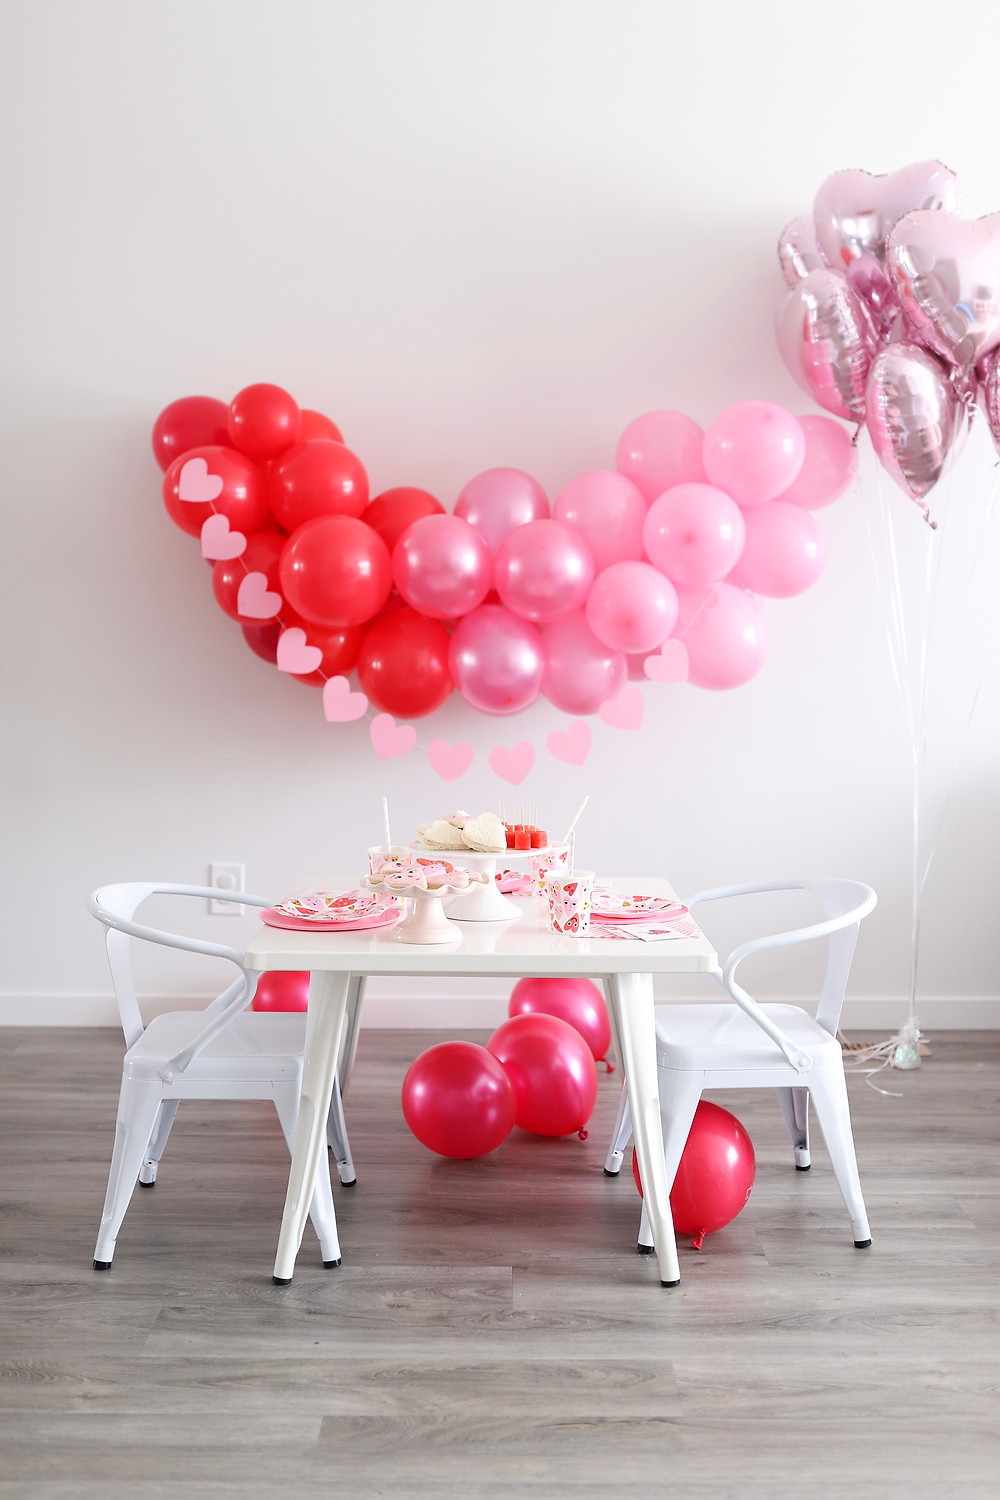 A room set for a little girls Valentine's Day party.